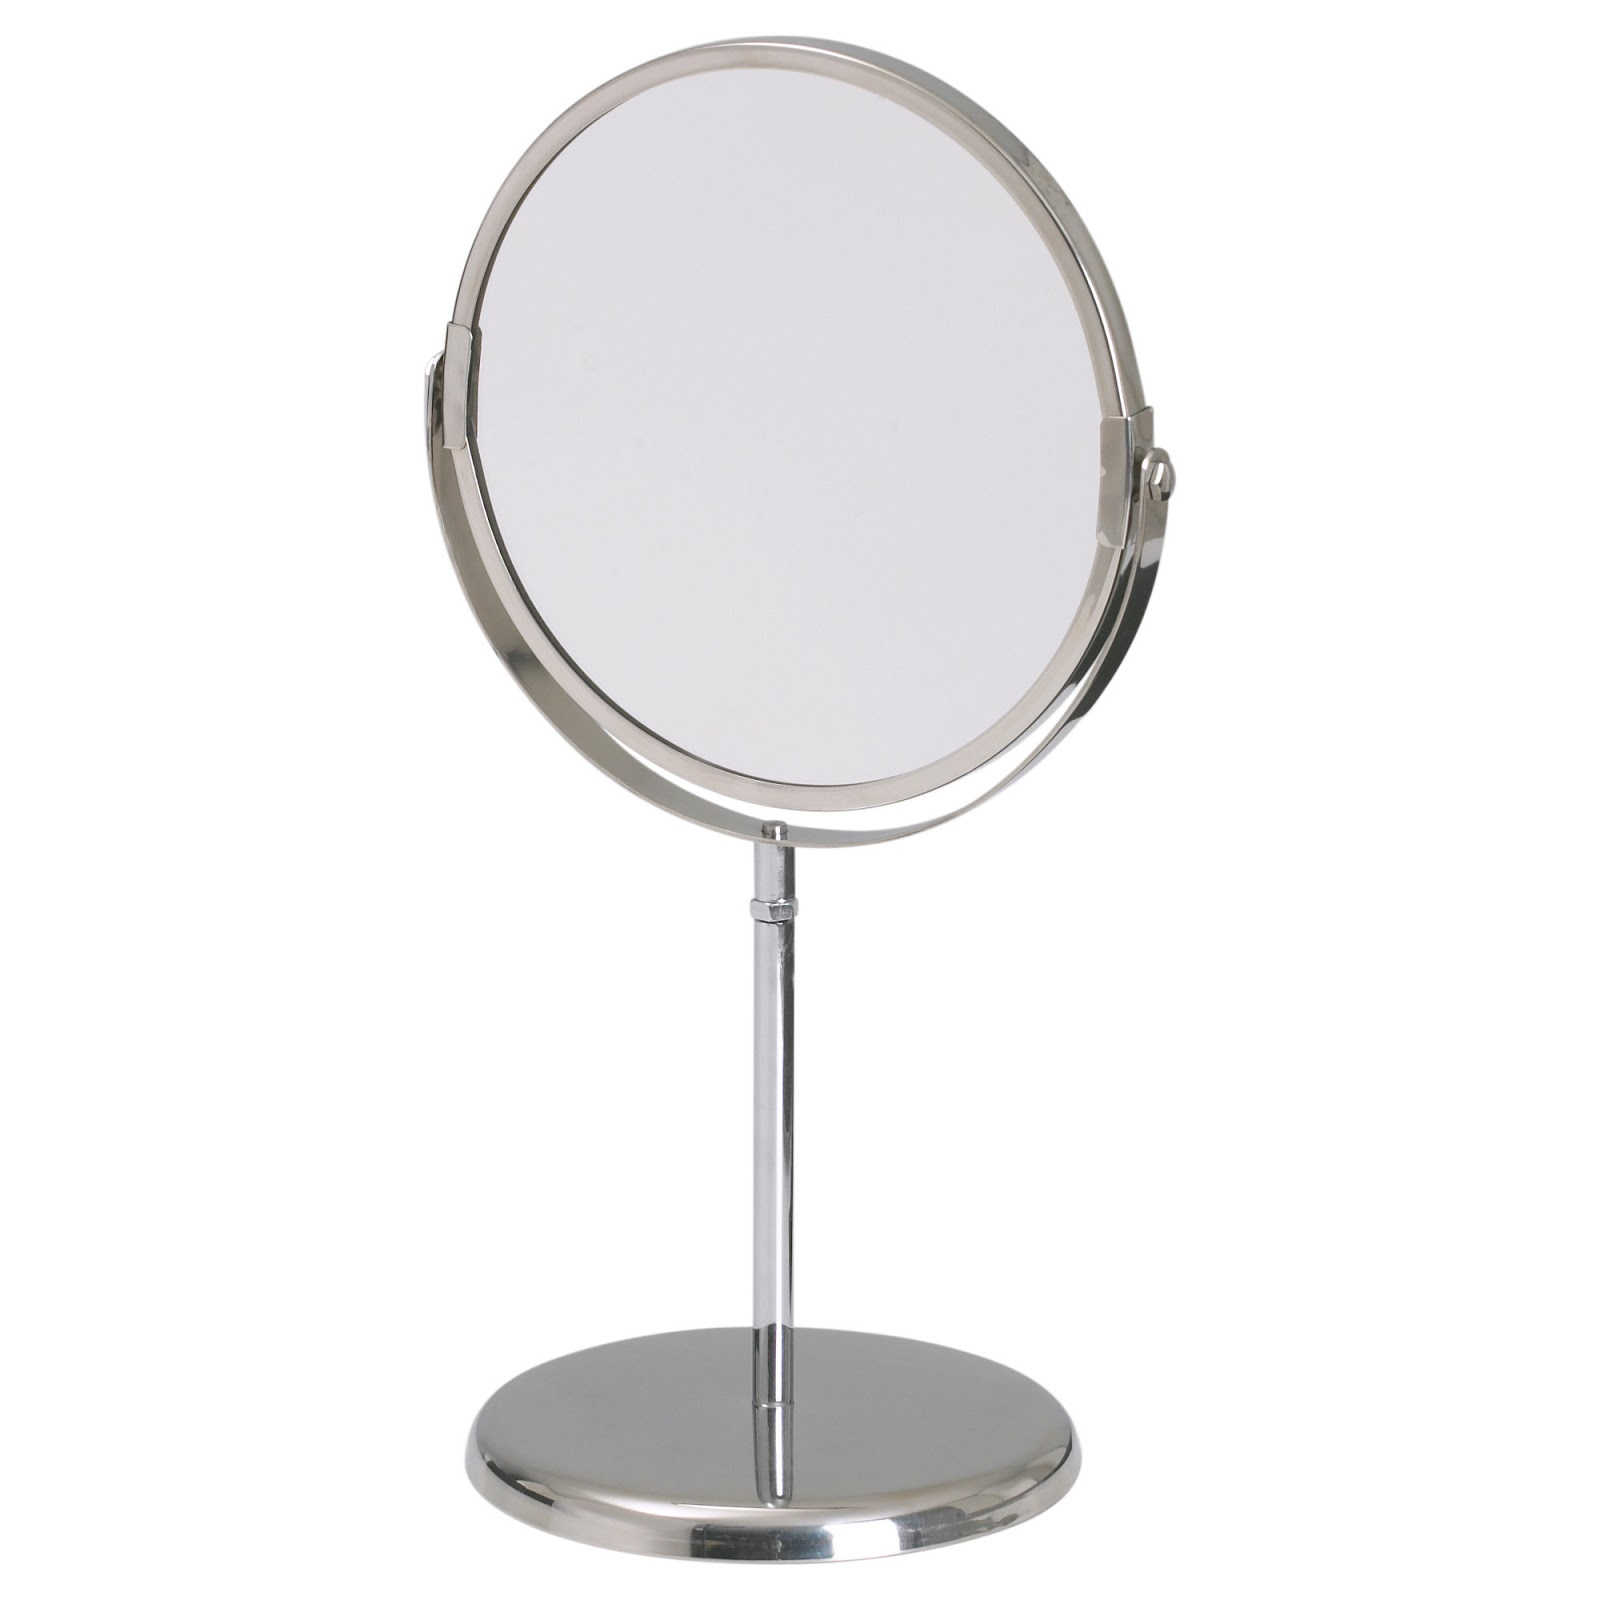 Welkom op beautys delight ikea wishlist nieuw make up hoekje for Miroir sur pied ikea